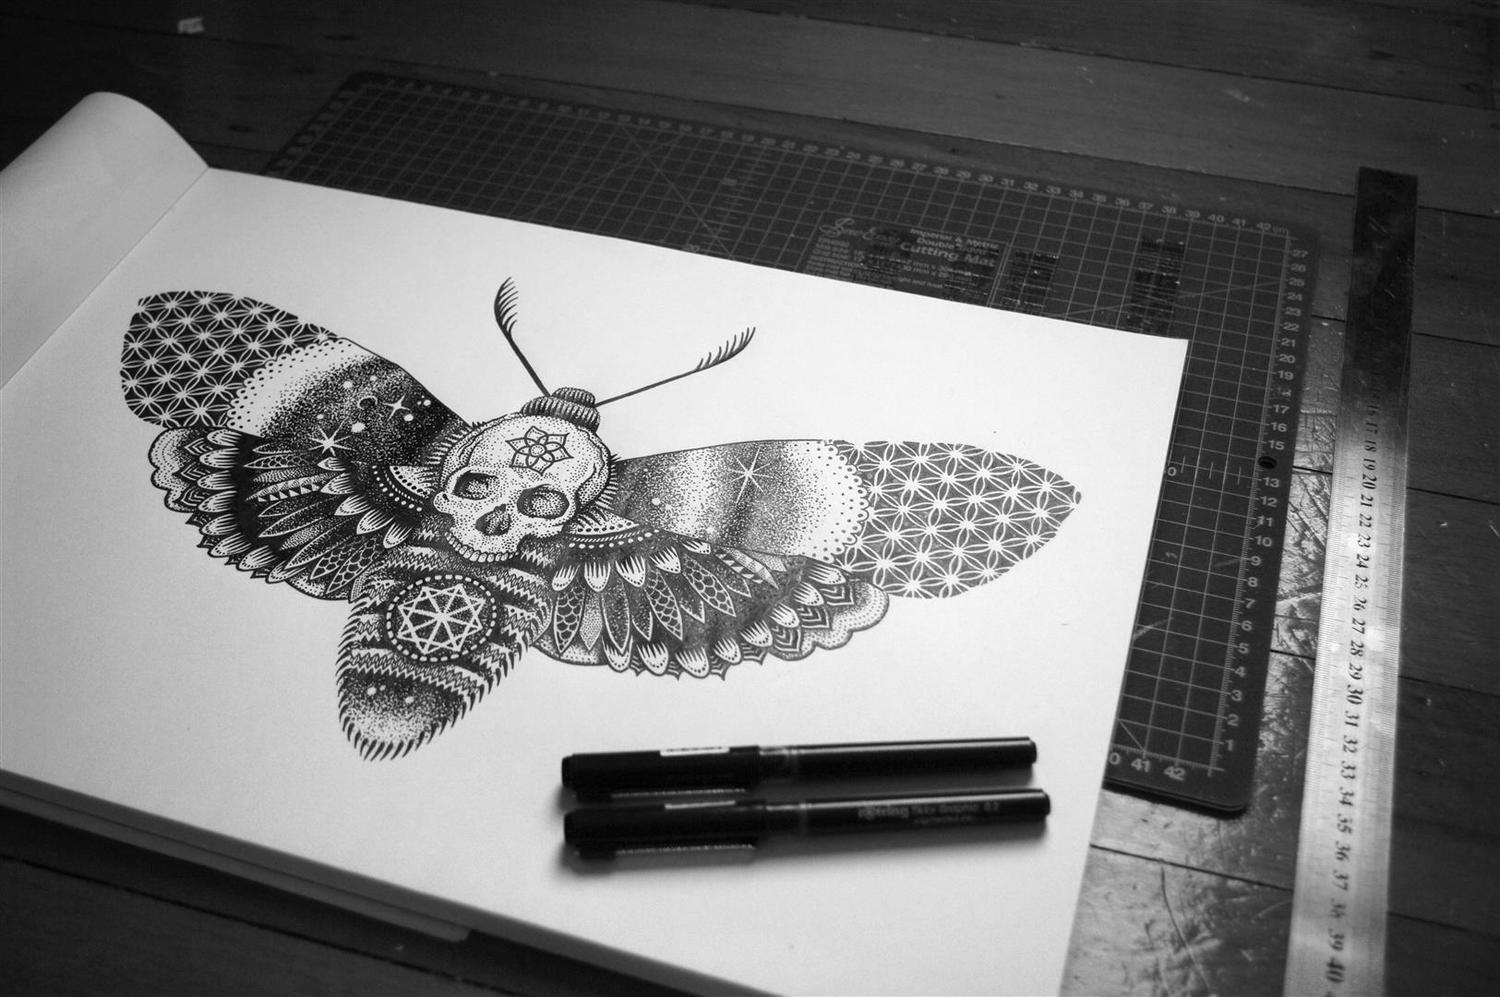 13-Moth-Tony-Graystone-Neon-Mystic-Black-and-White-Drawings-www-designstack-co